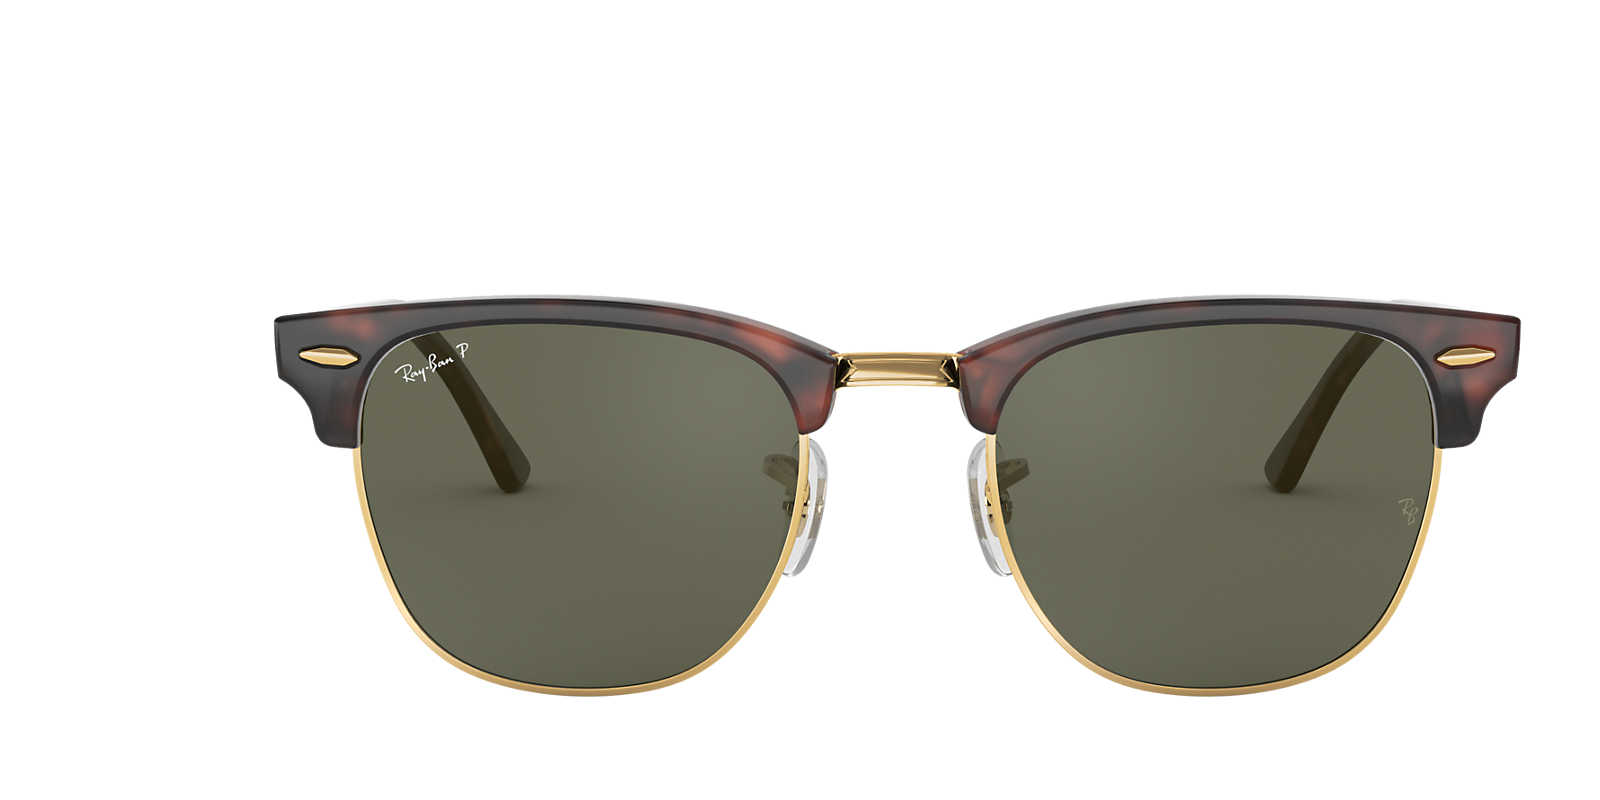 Ray ban sunglasses spare parts - Rb3016 49 Clubmaster Rb3016 49 Clubmaster Ray Ban